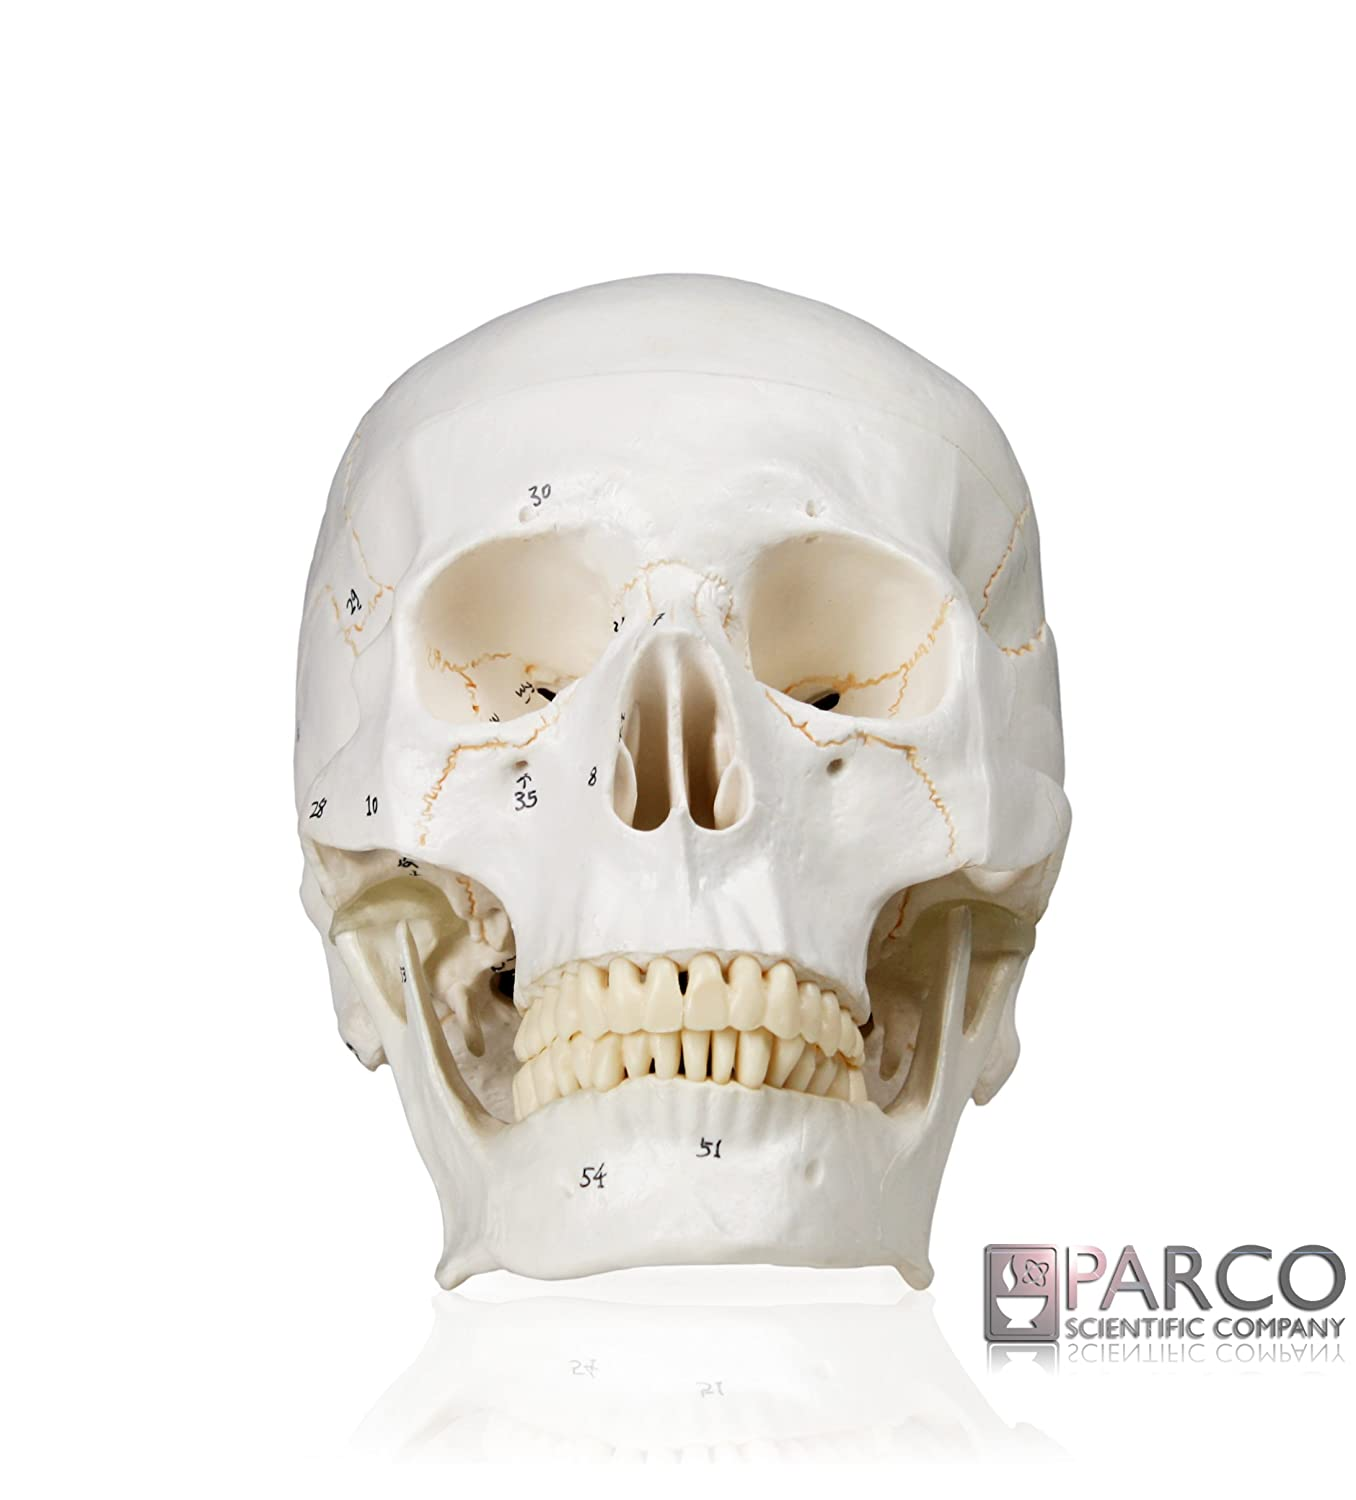 parco scientific pb00029 medical numbered human skull-3 part | life size |  from real human skull, detail hand painted numbering | sectioned skullcap